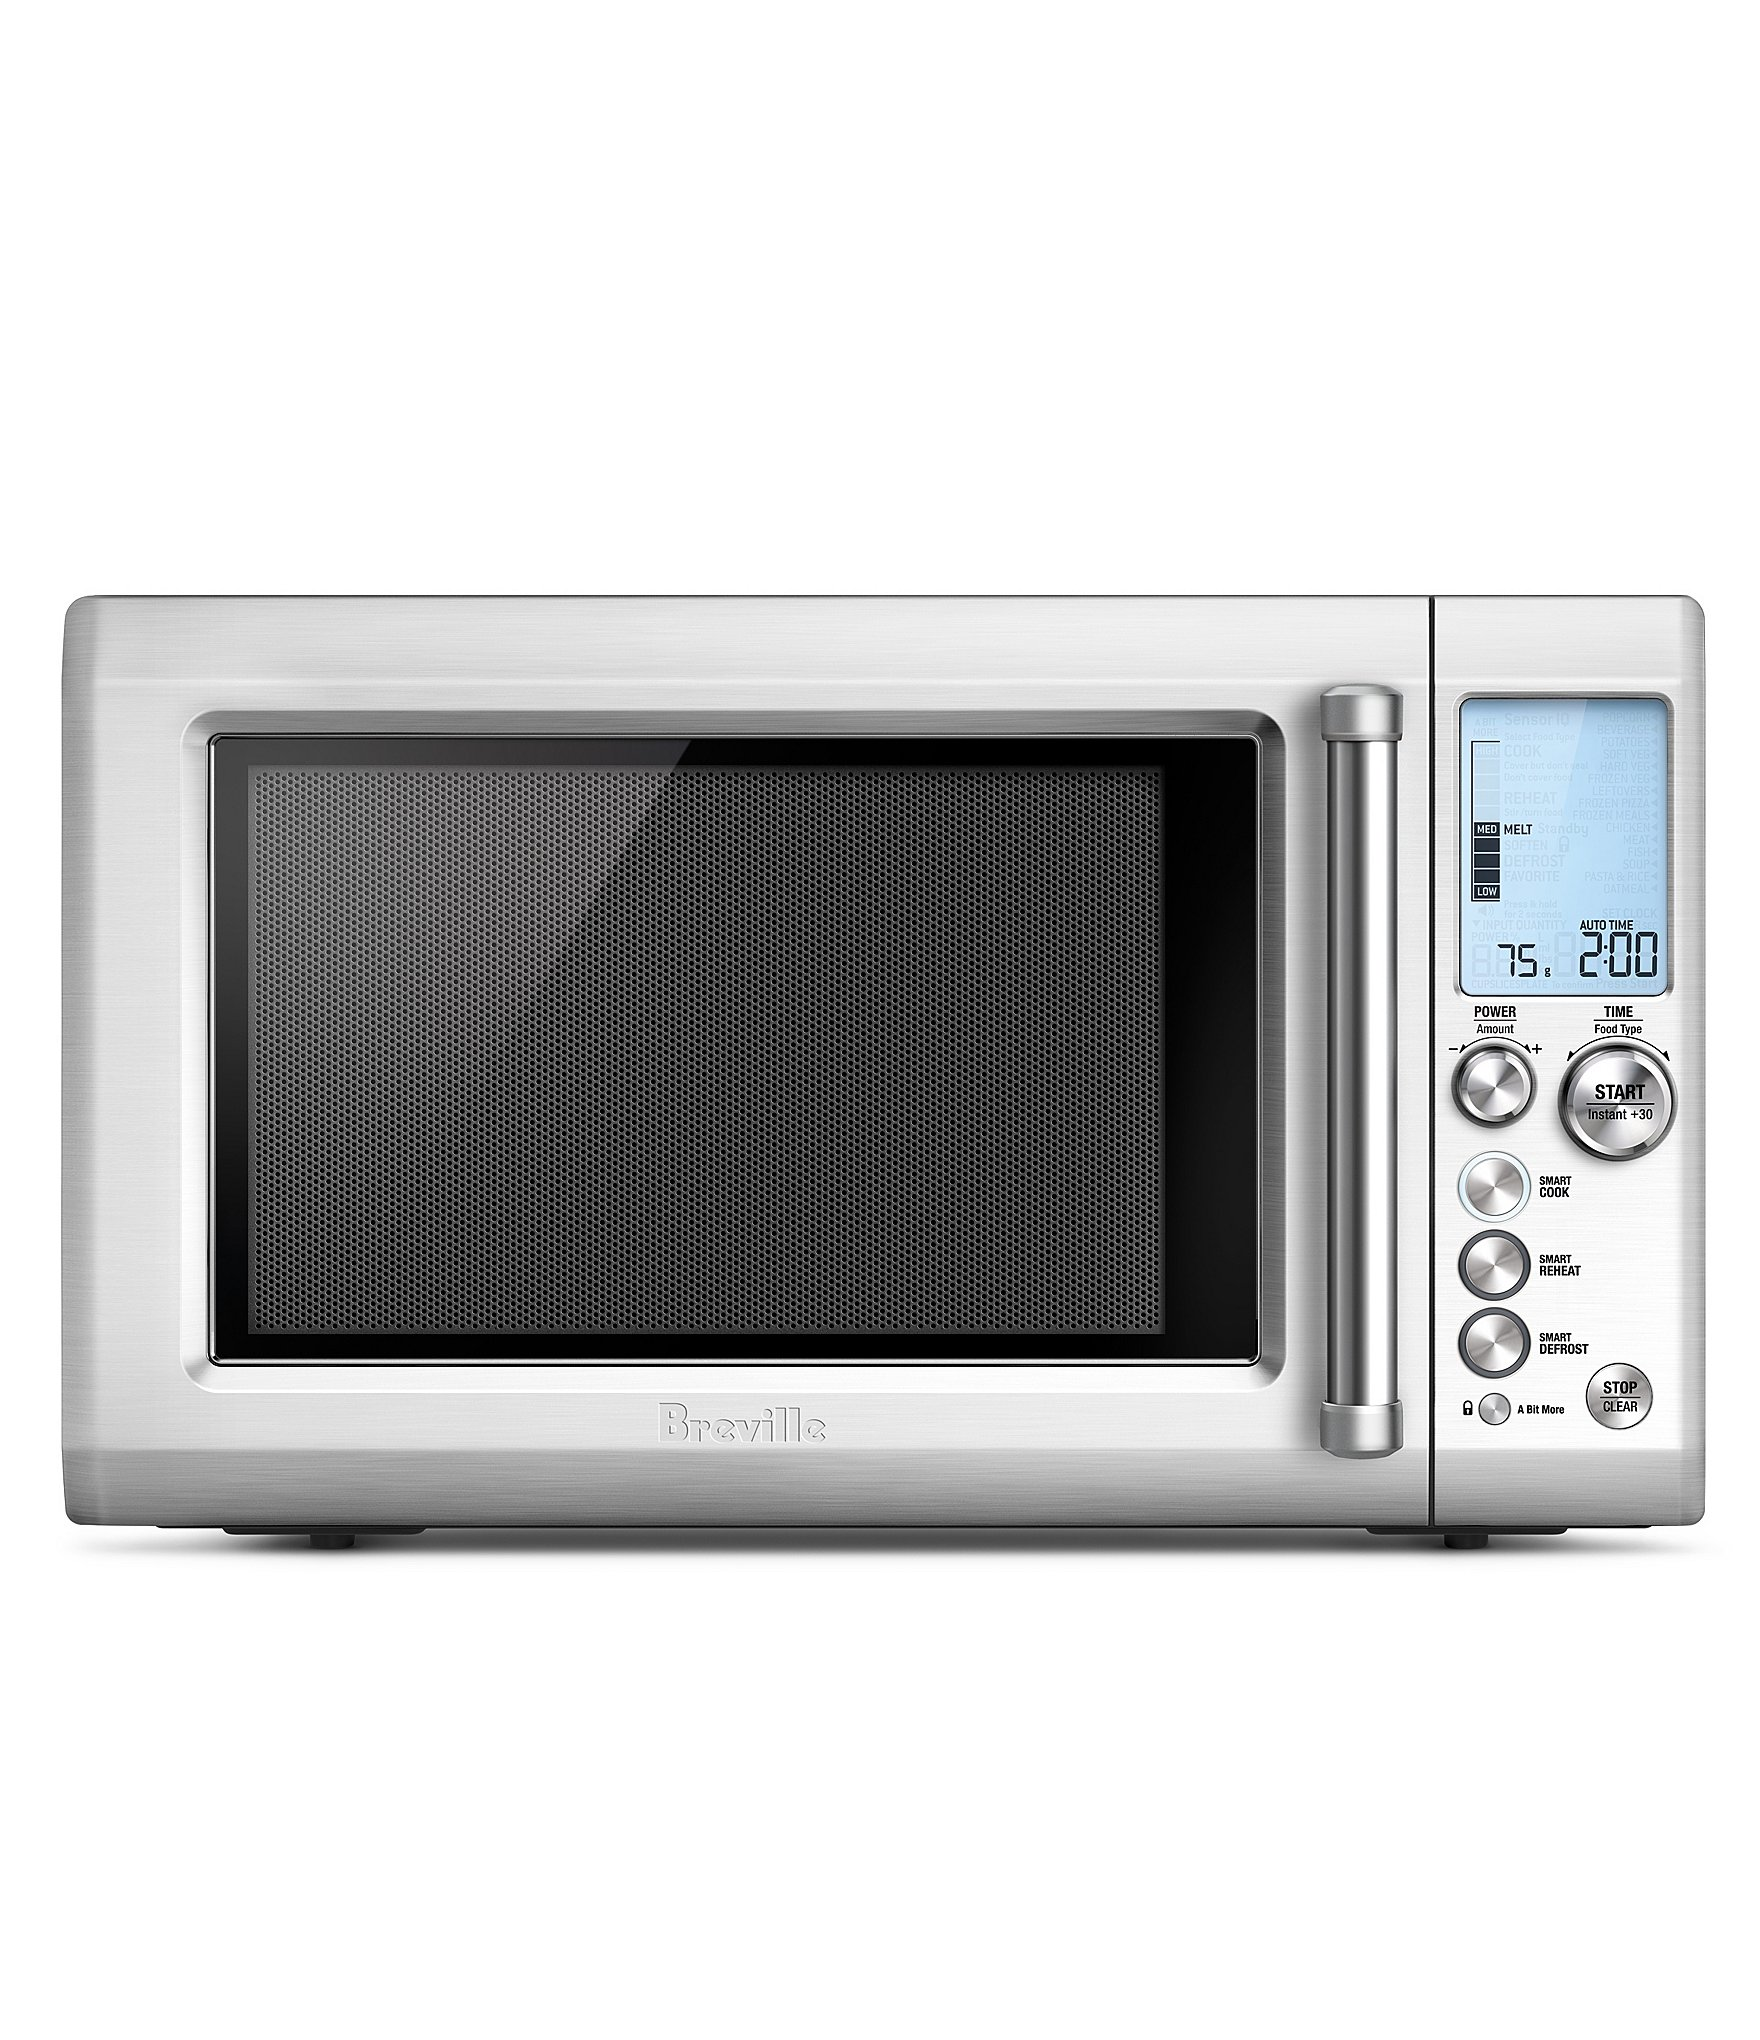 at in white bajaj microwave litre india t low buy dp toaster majesty prices online amazon grill oven